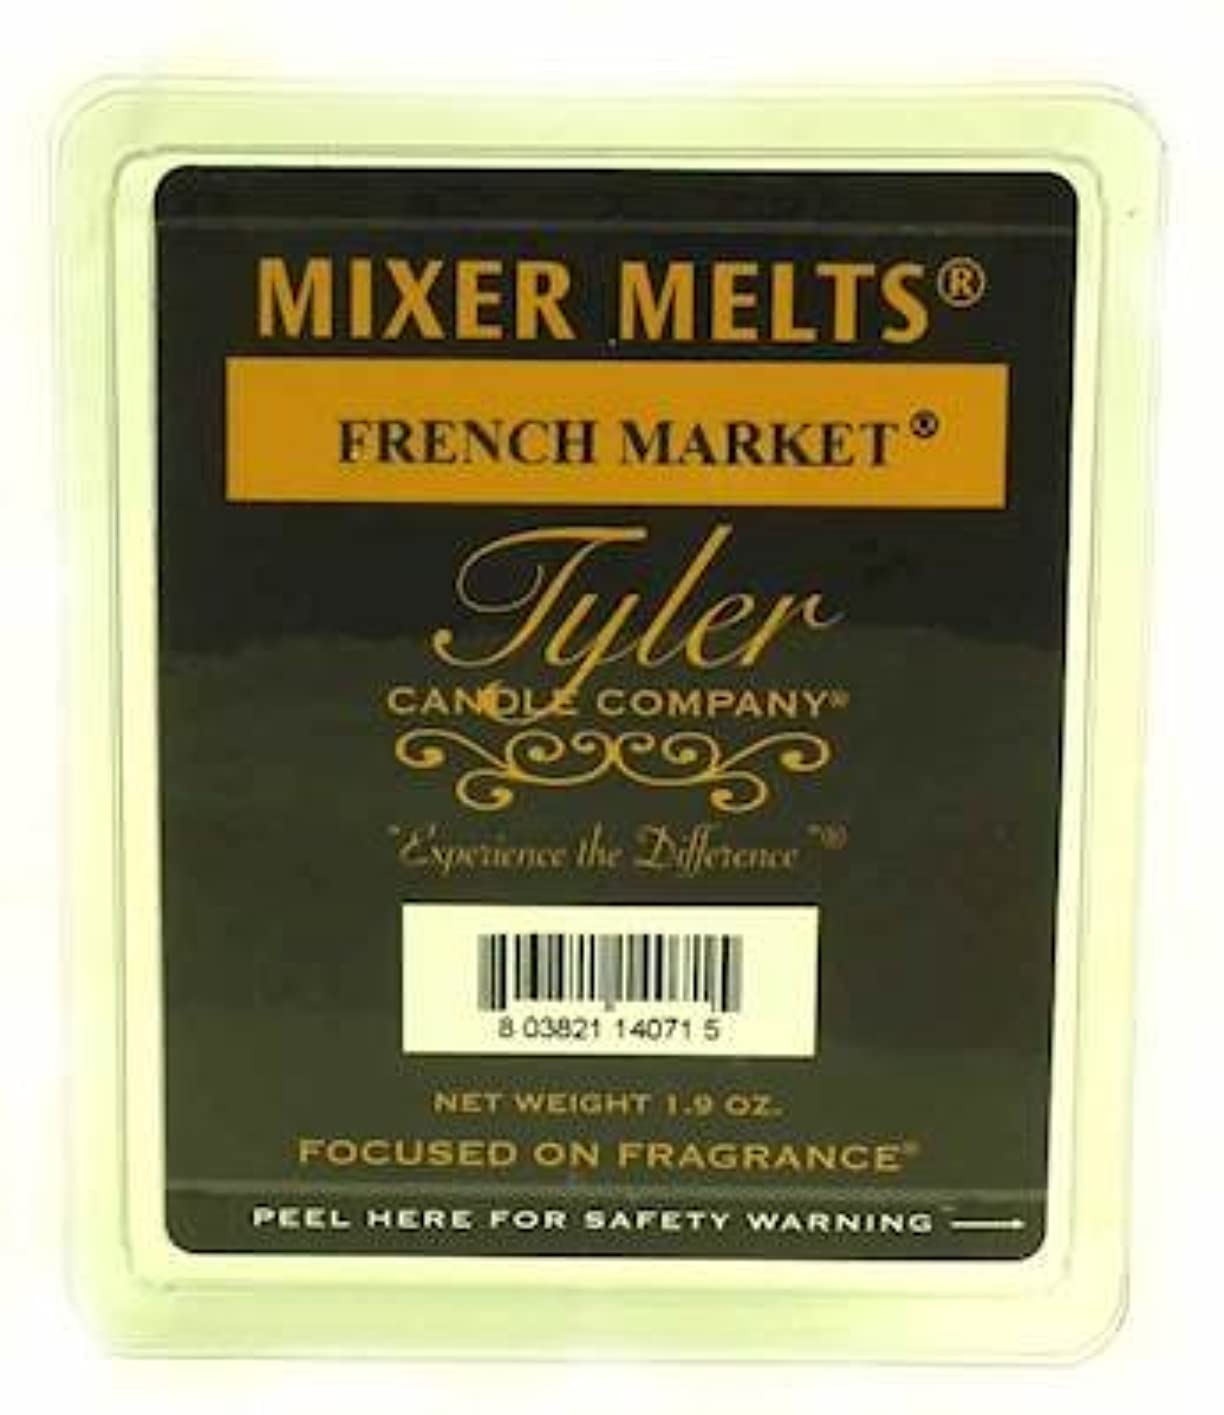 十億属するバッテリーTyler Candles Mixer Melts - French Market by Tyler Company